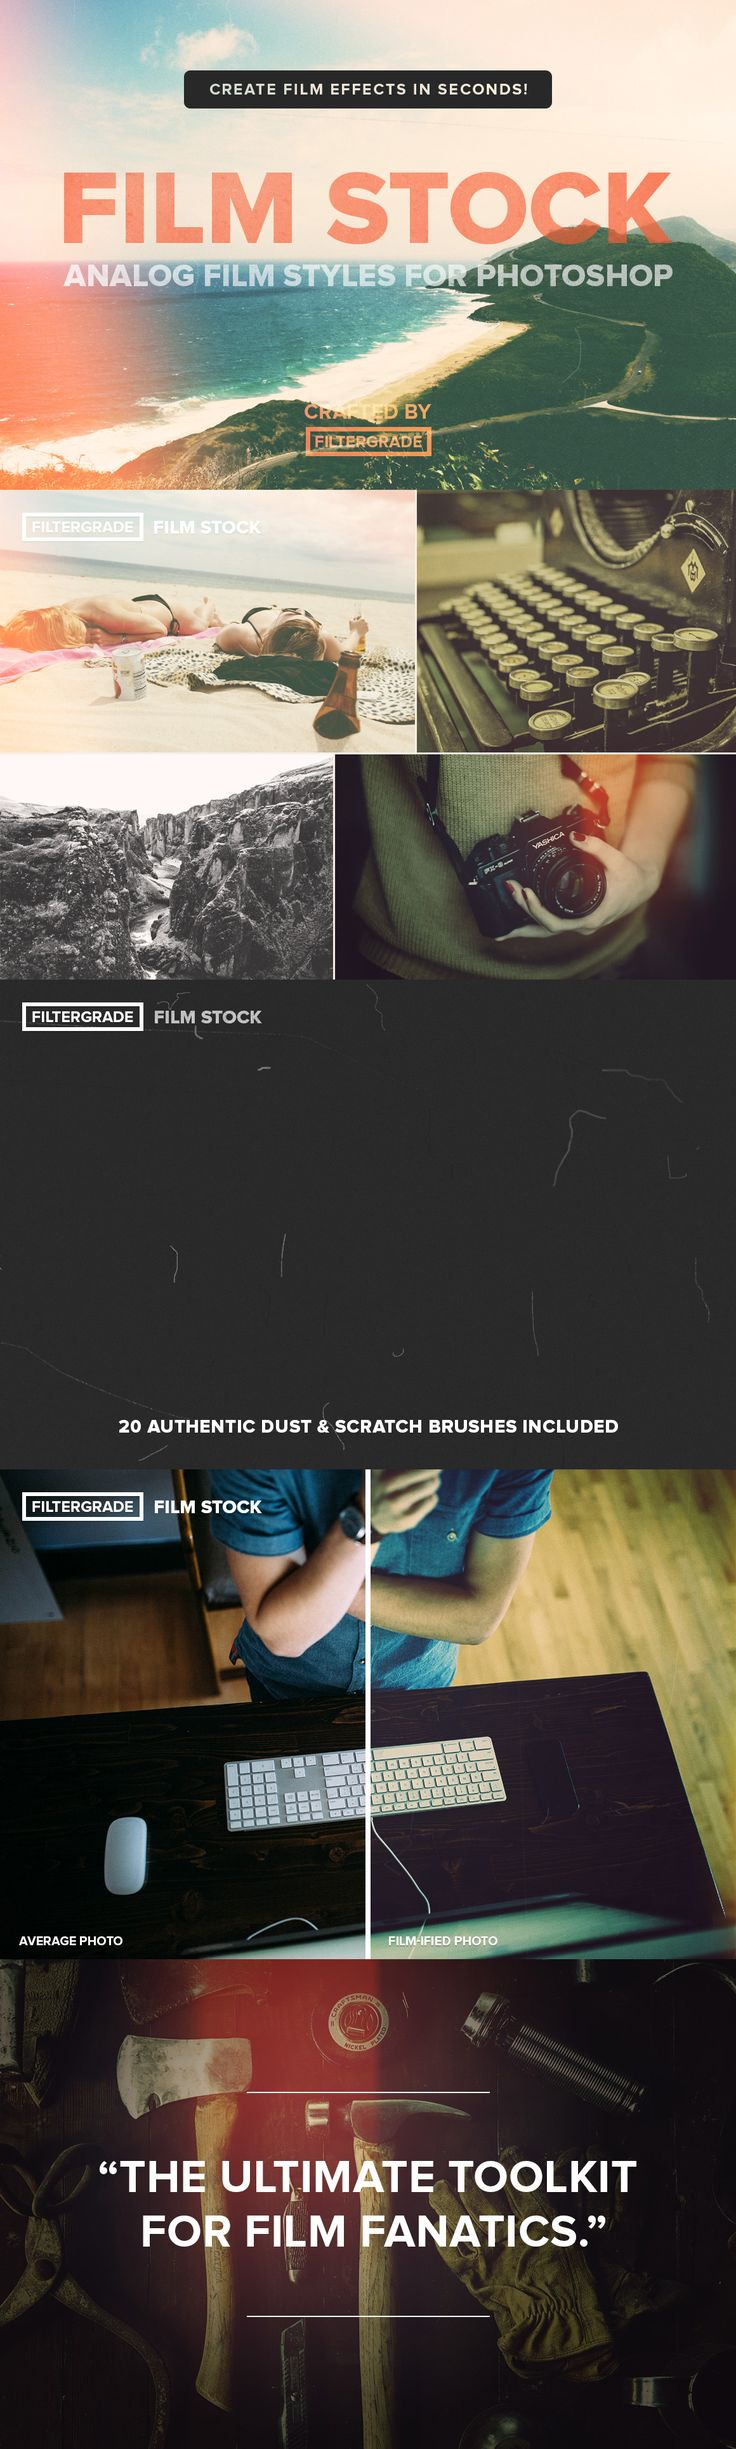 FilmStock Analog Photoshop Actions. An authentic set of film and analog styles for your photos!